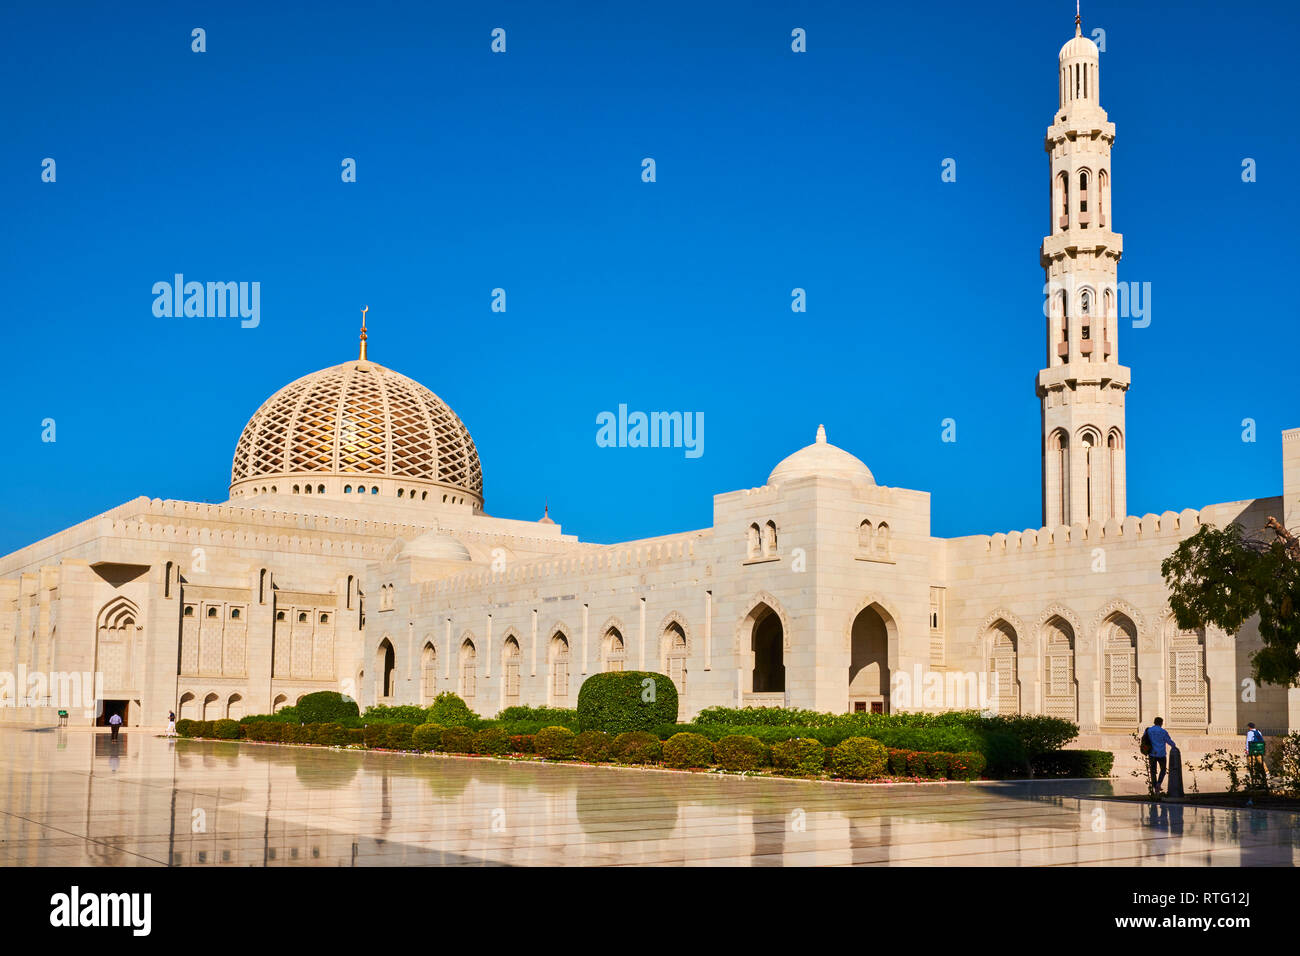 Sultant of Oman, Muscat, Sultan Qaboos Grand Mosque - Stock Image